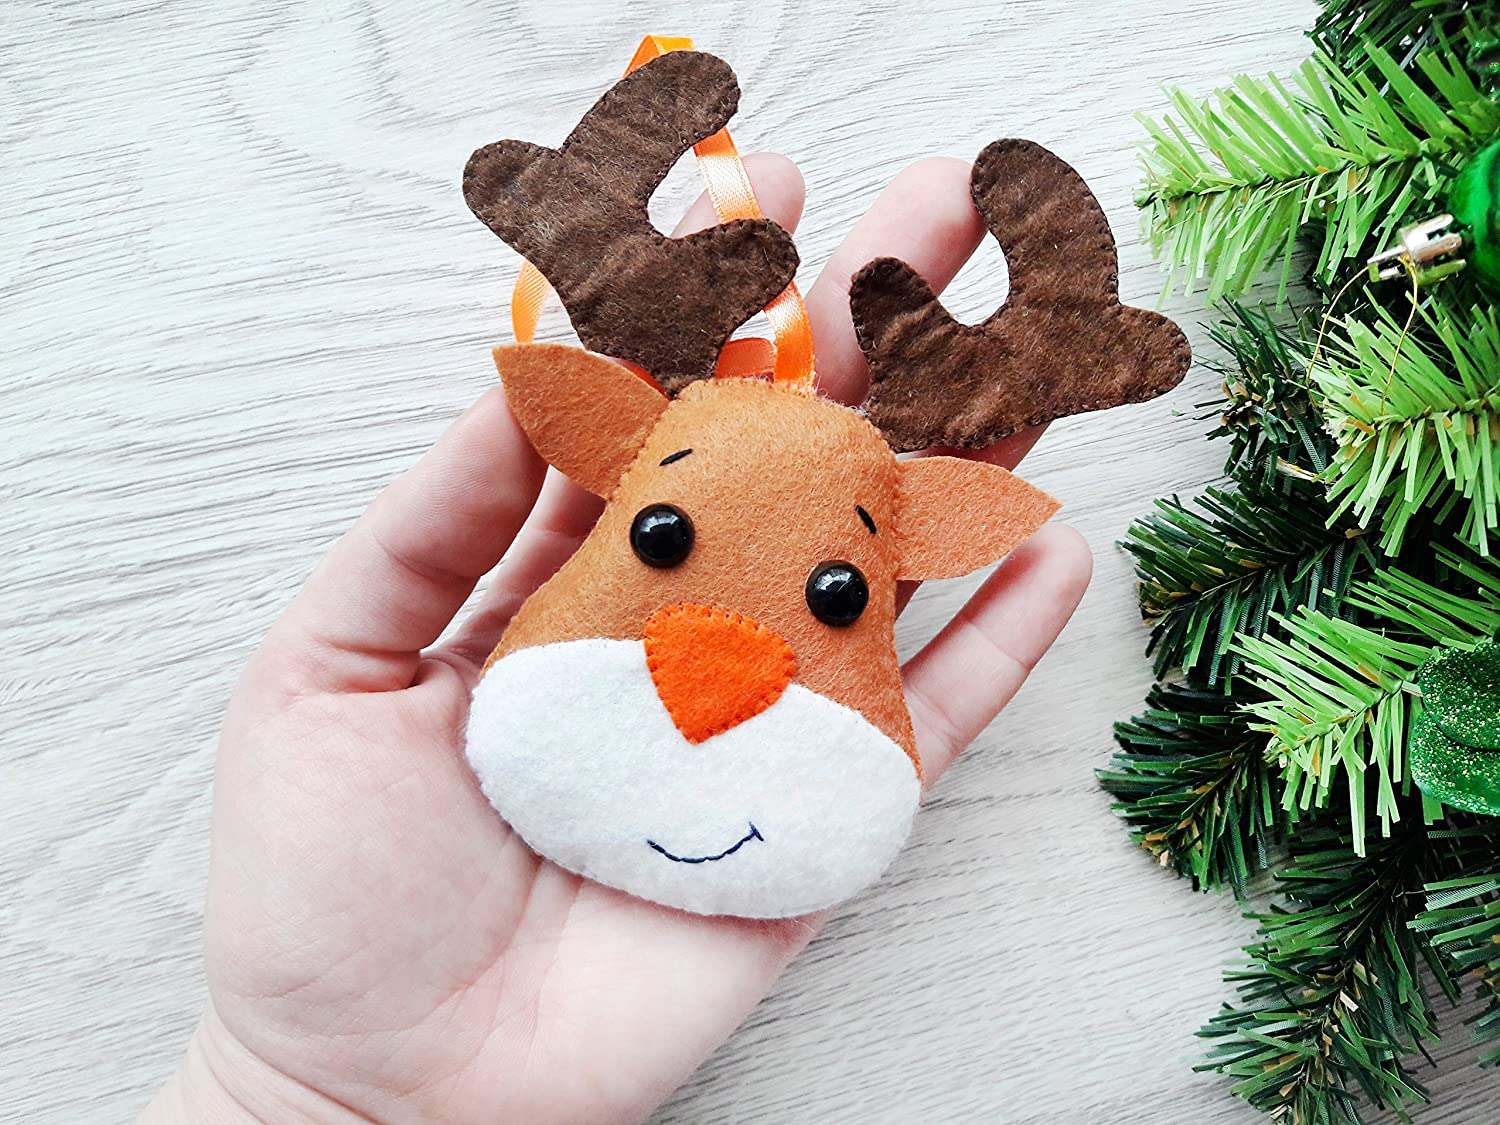 Rudolph Christmas Decorations.Amazon Com Felt Rudolph Reindeer Christmas Ornament